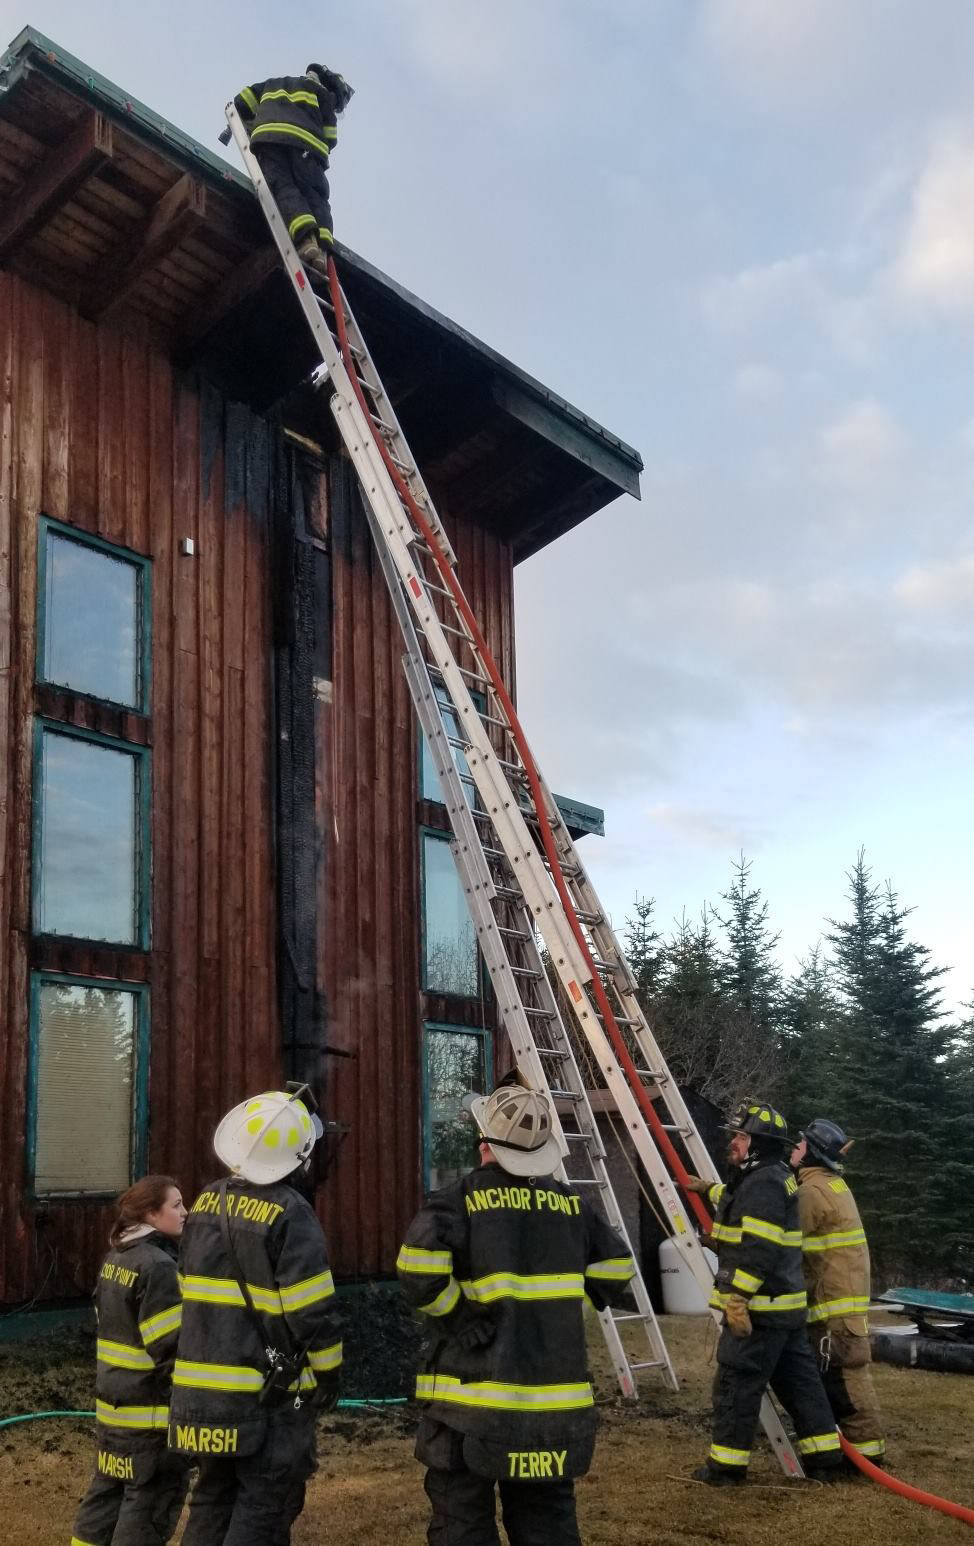 Anchor Point Fire & EMS and Ninilchik Emergency Services firefighters respond to a chimney fire at a Long Gone Avenue home after 7:15 p.m. April 5, 2019, near Anchor Point, Alaska. (Photo provided)